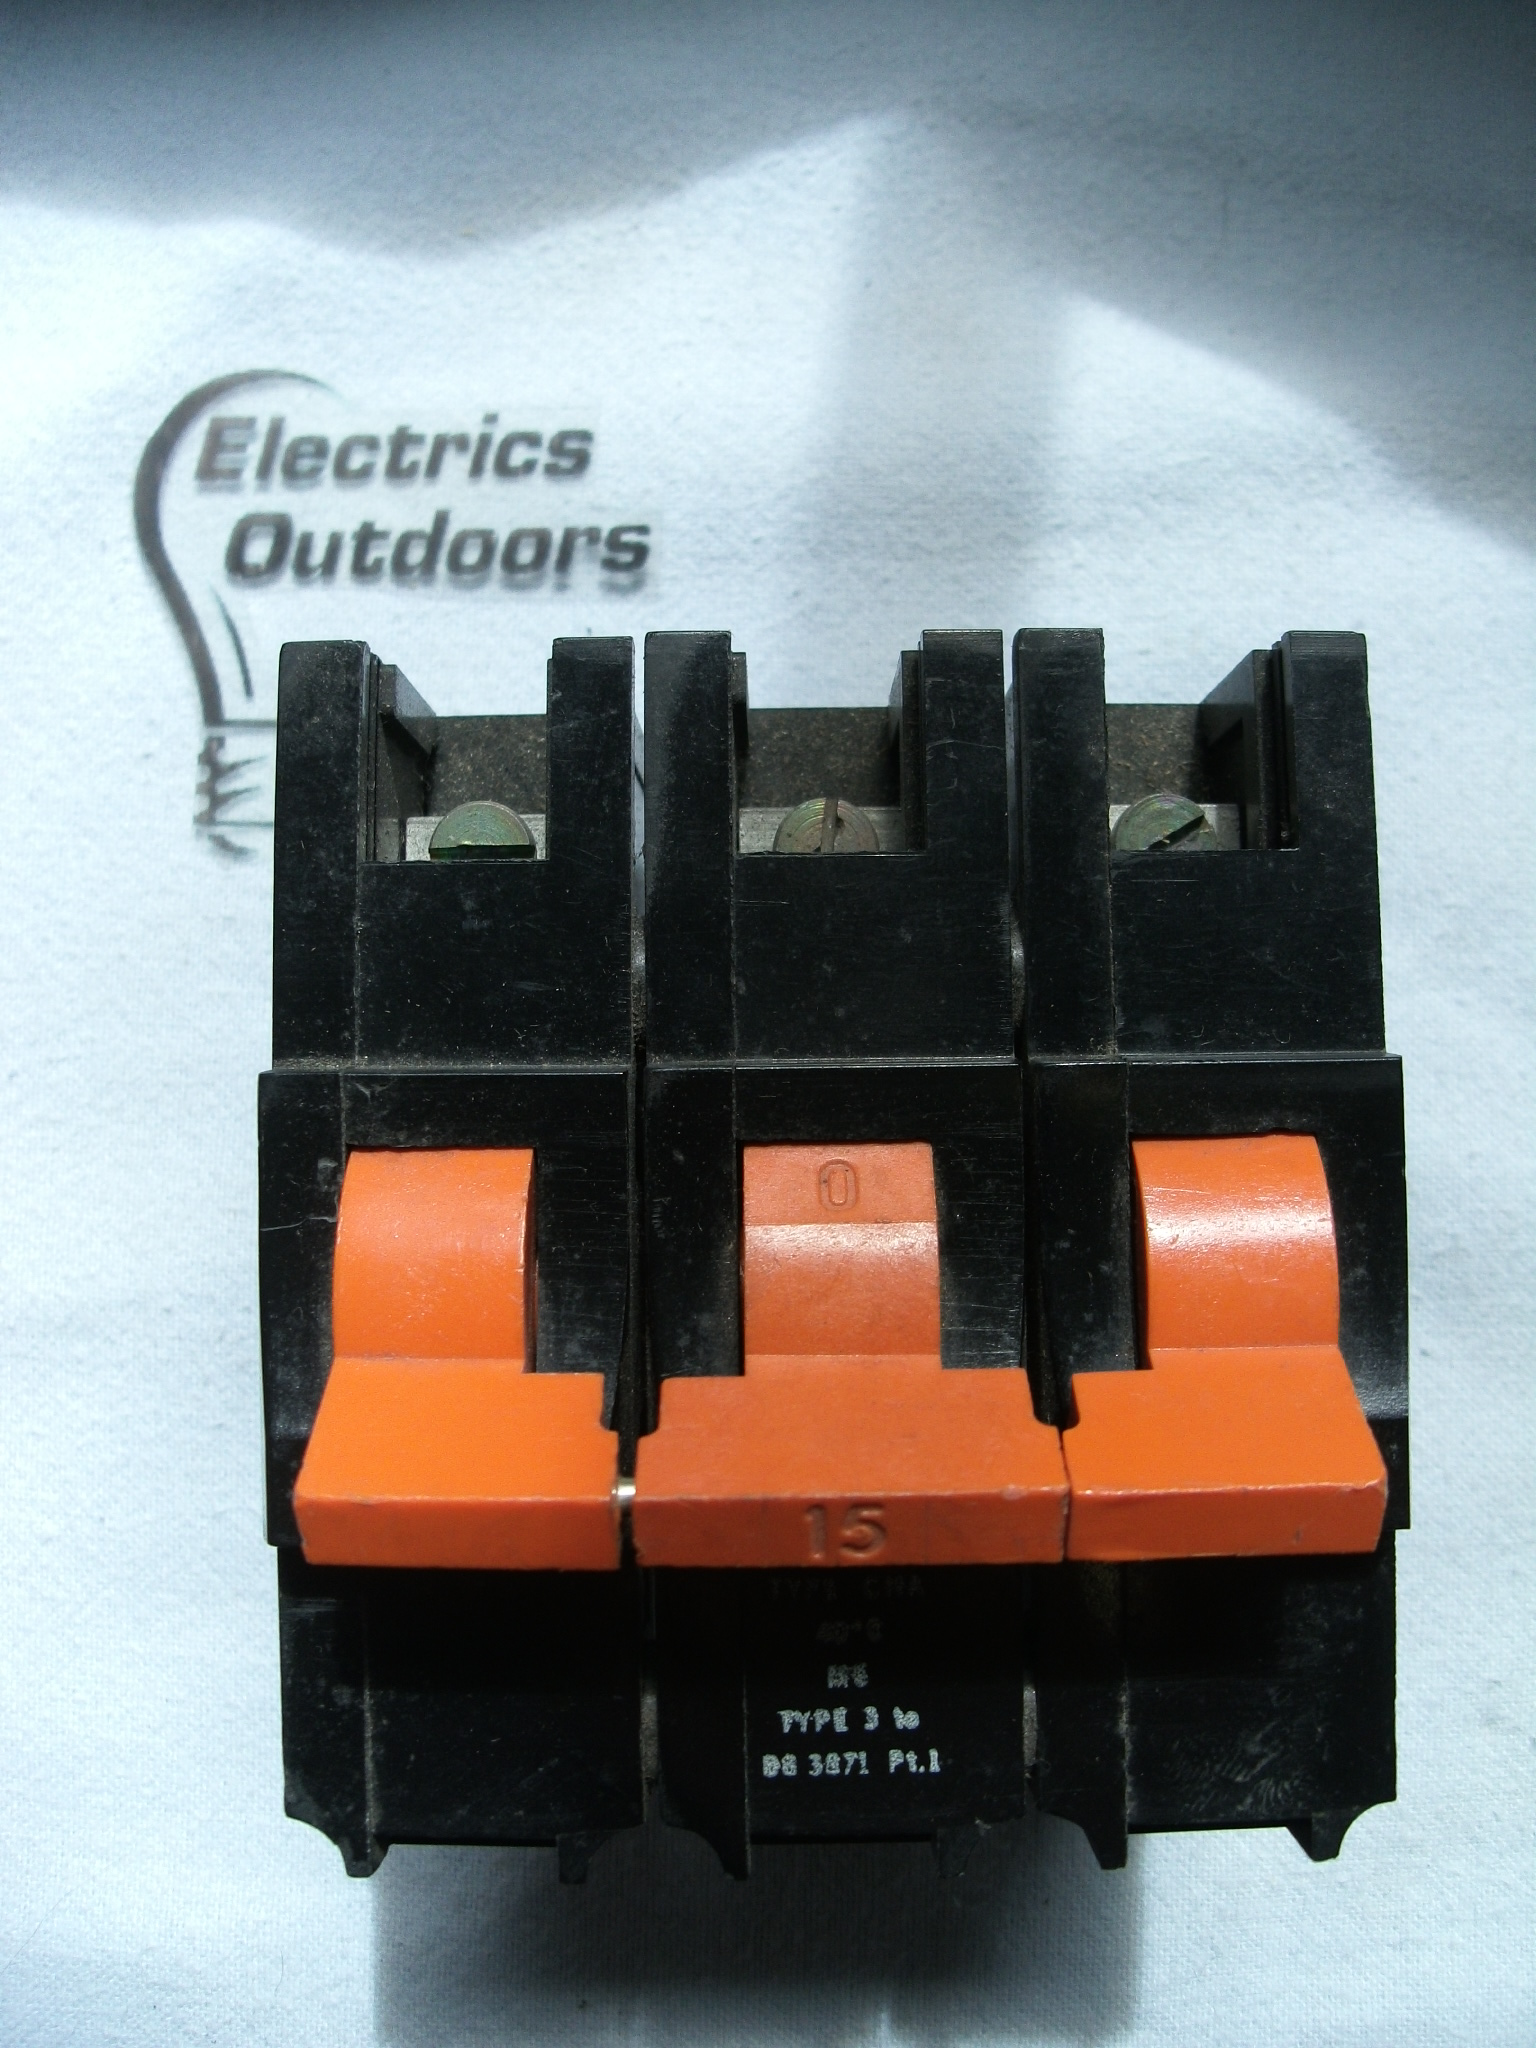 FEDERAL ELECTRIC 15 AMP TYPE 3 M5 TRIPLE 3 POLE MCB CIRCUIT BREA